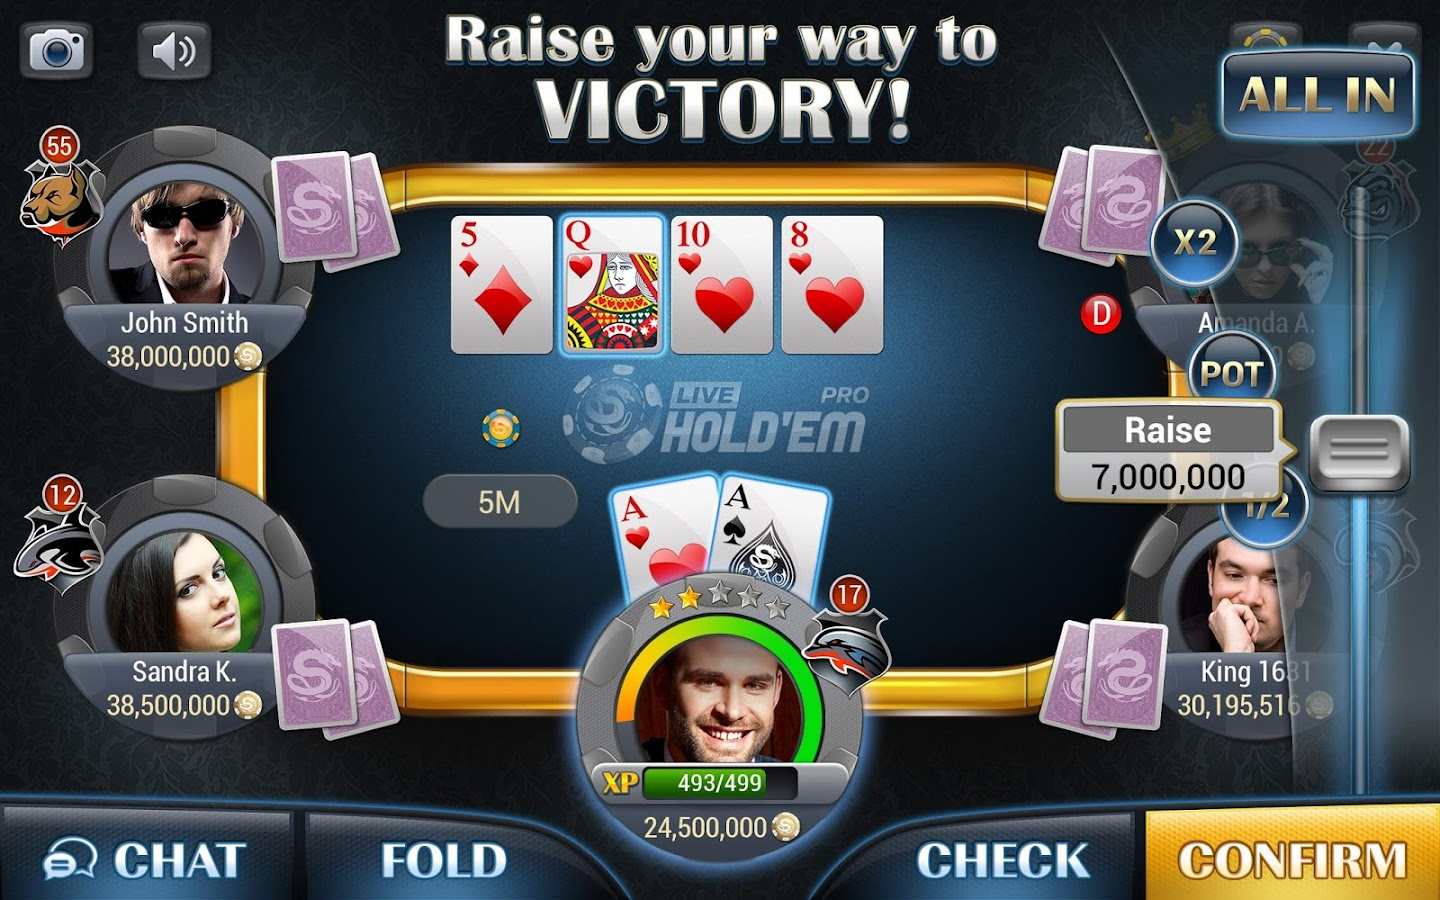 Live Hold'em Pro - Poker- screenshot